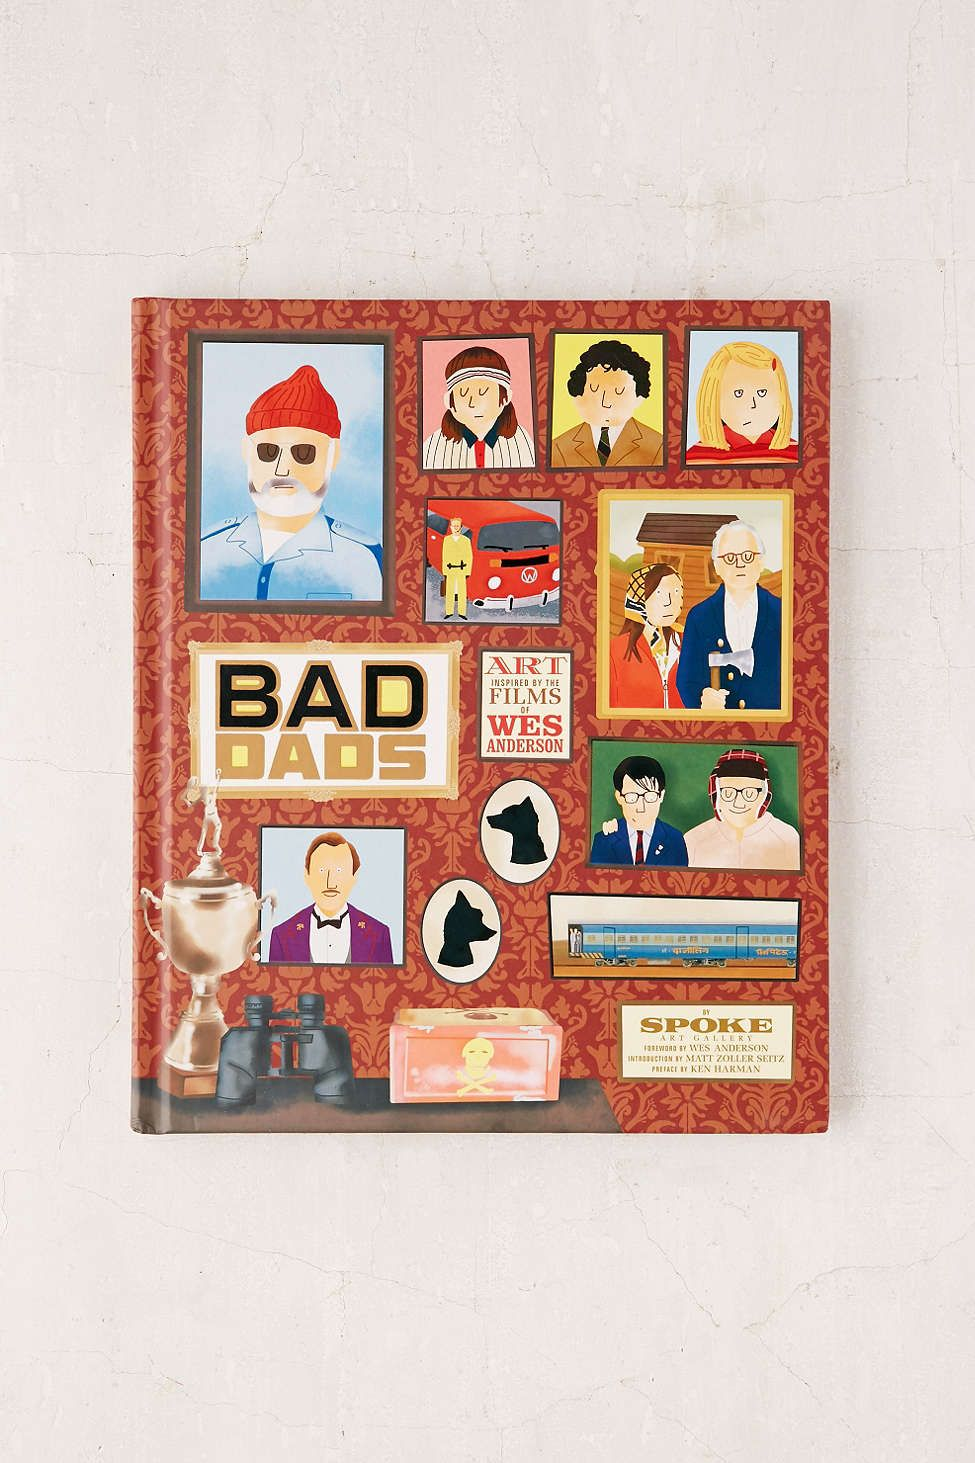 Bad dads art inspired by the films of wes anderson by spoke art